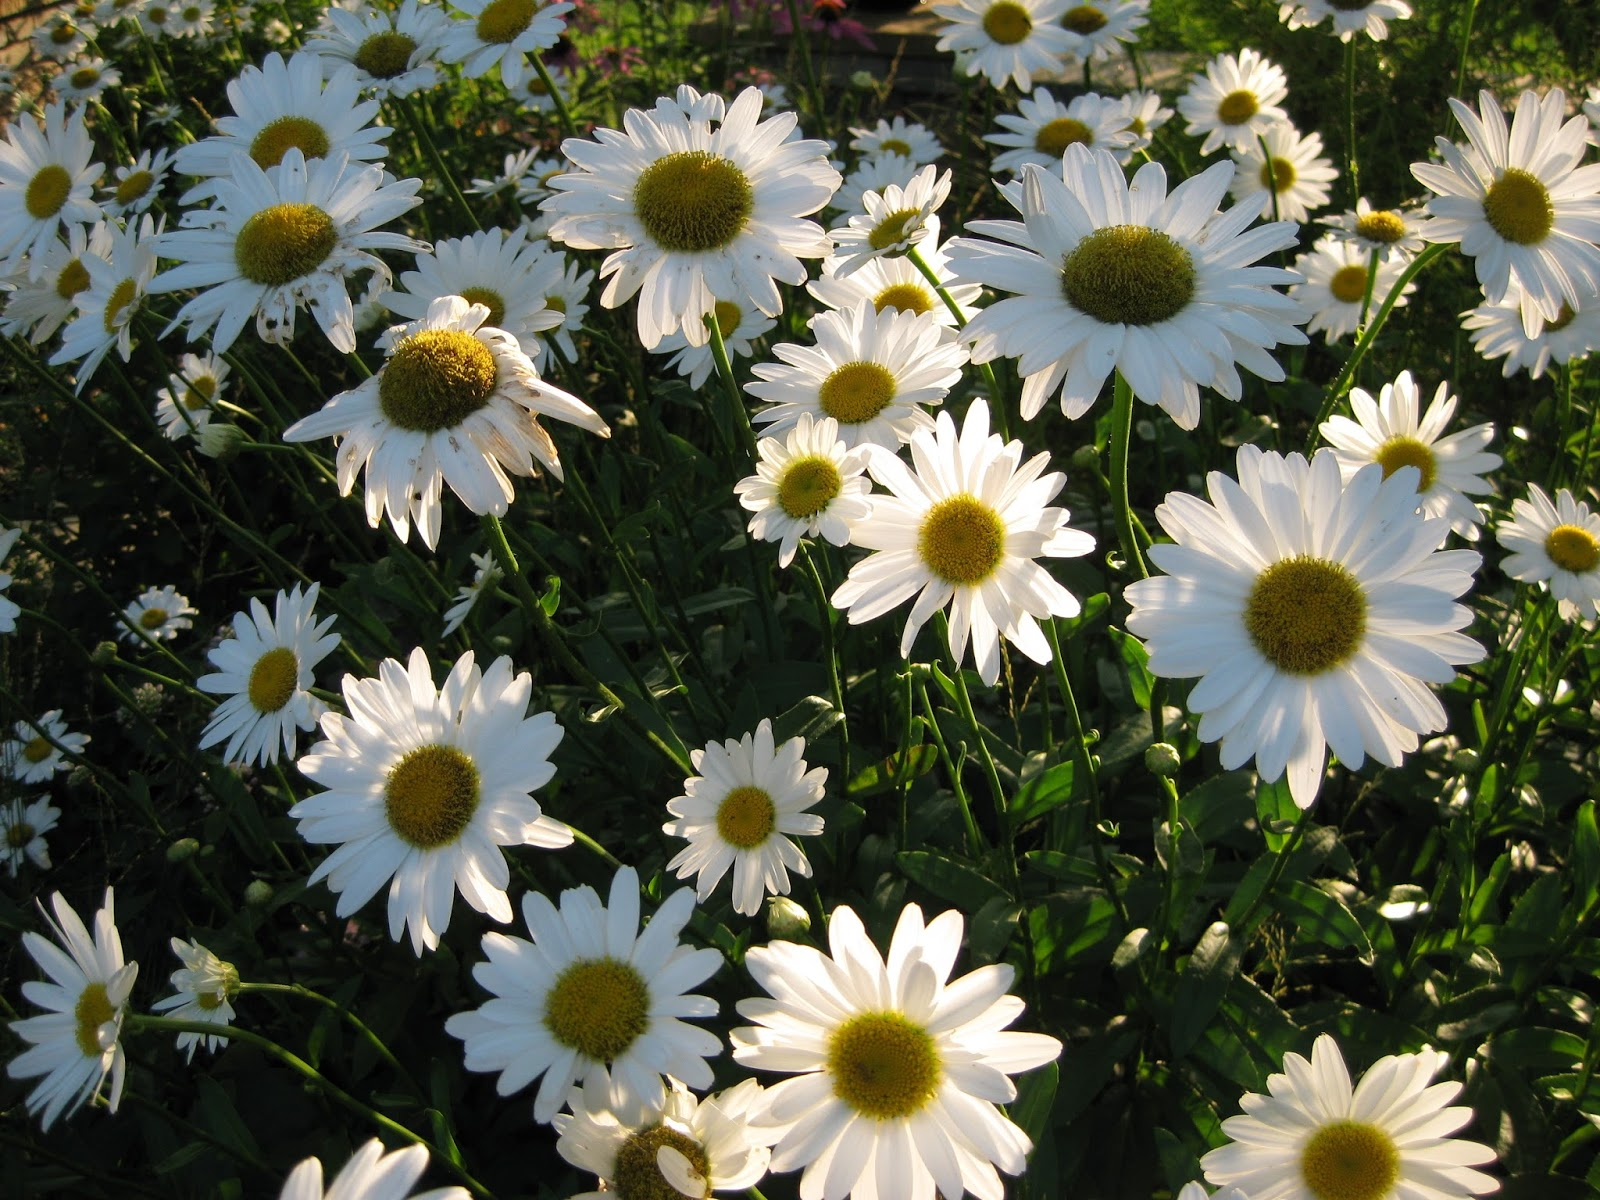 The shasta daisy leucanthemum rotary botanical gardens the holiday light show hls ran well last night and saw a moderate crowd for attendance izmirmasajfo